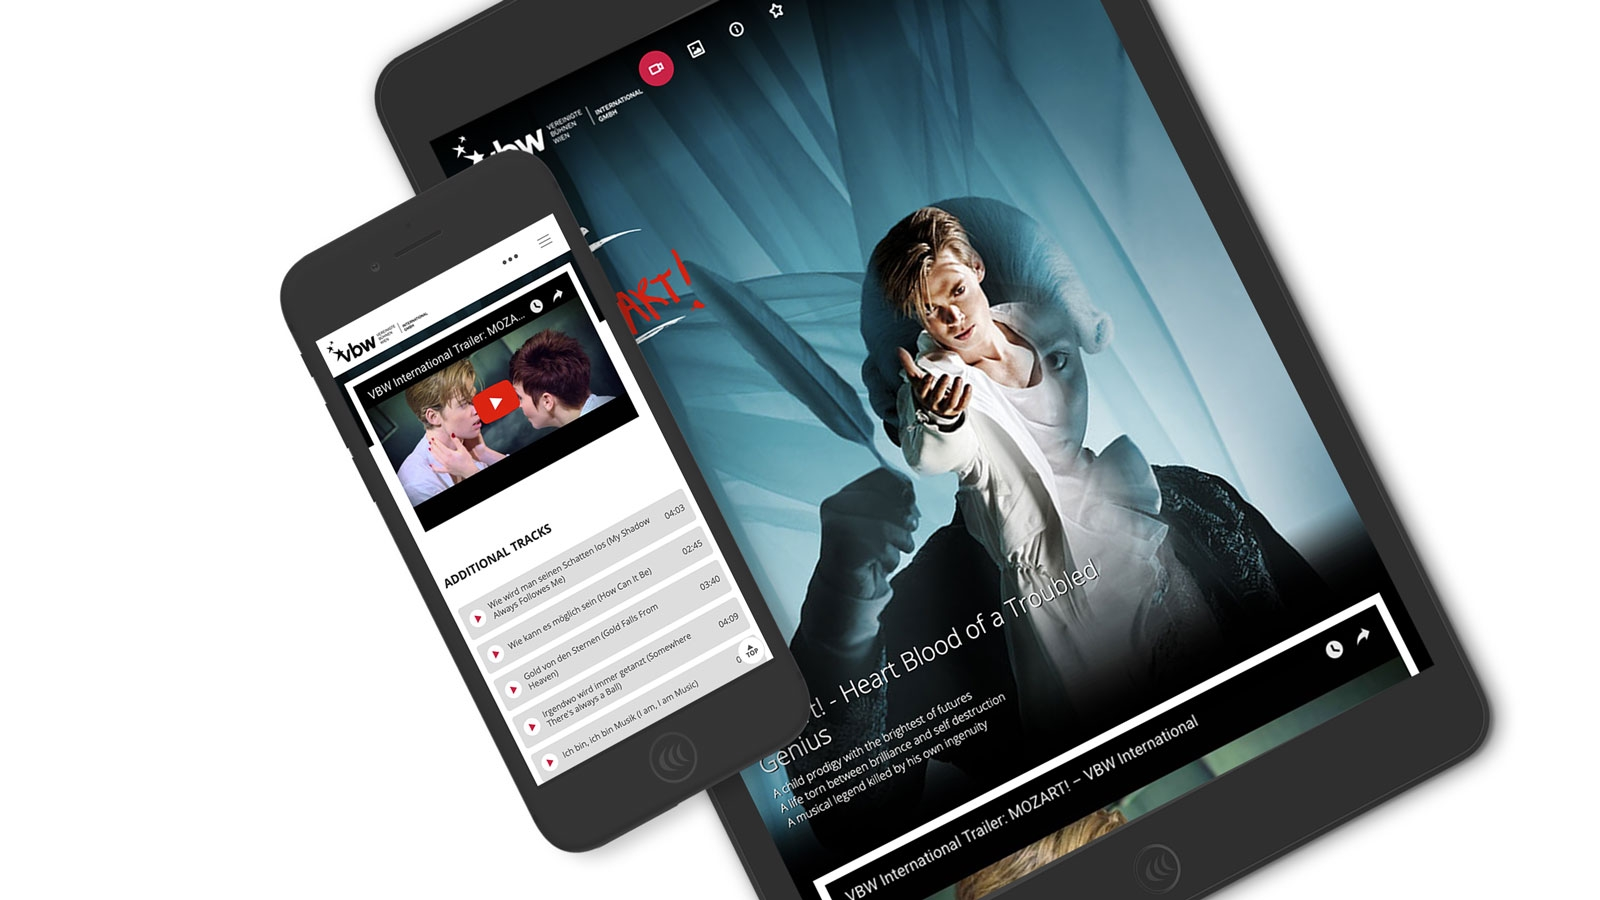 VBW International | vbw-international.at | 2018 (Responsive Smartphone, Tablet) © echonet communication